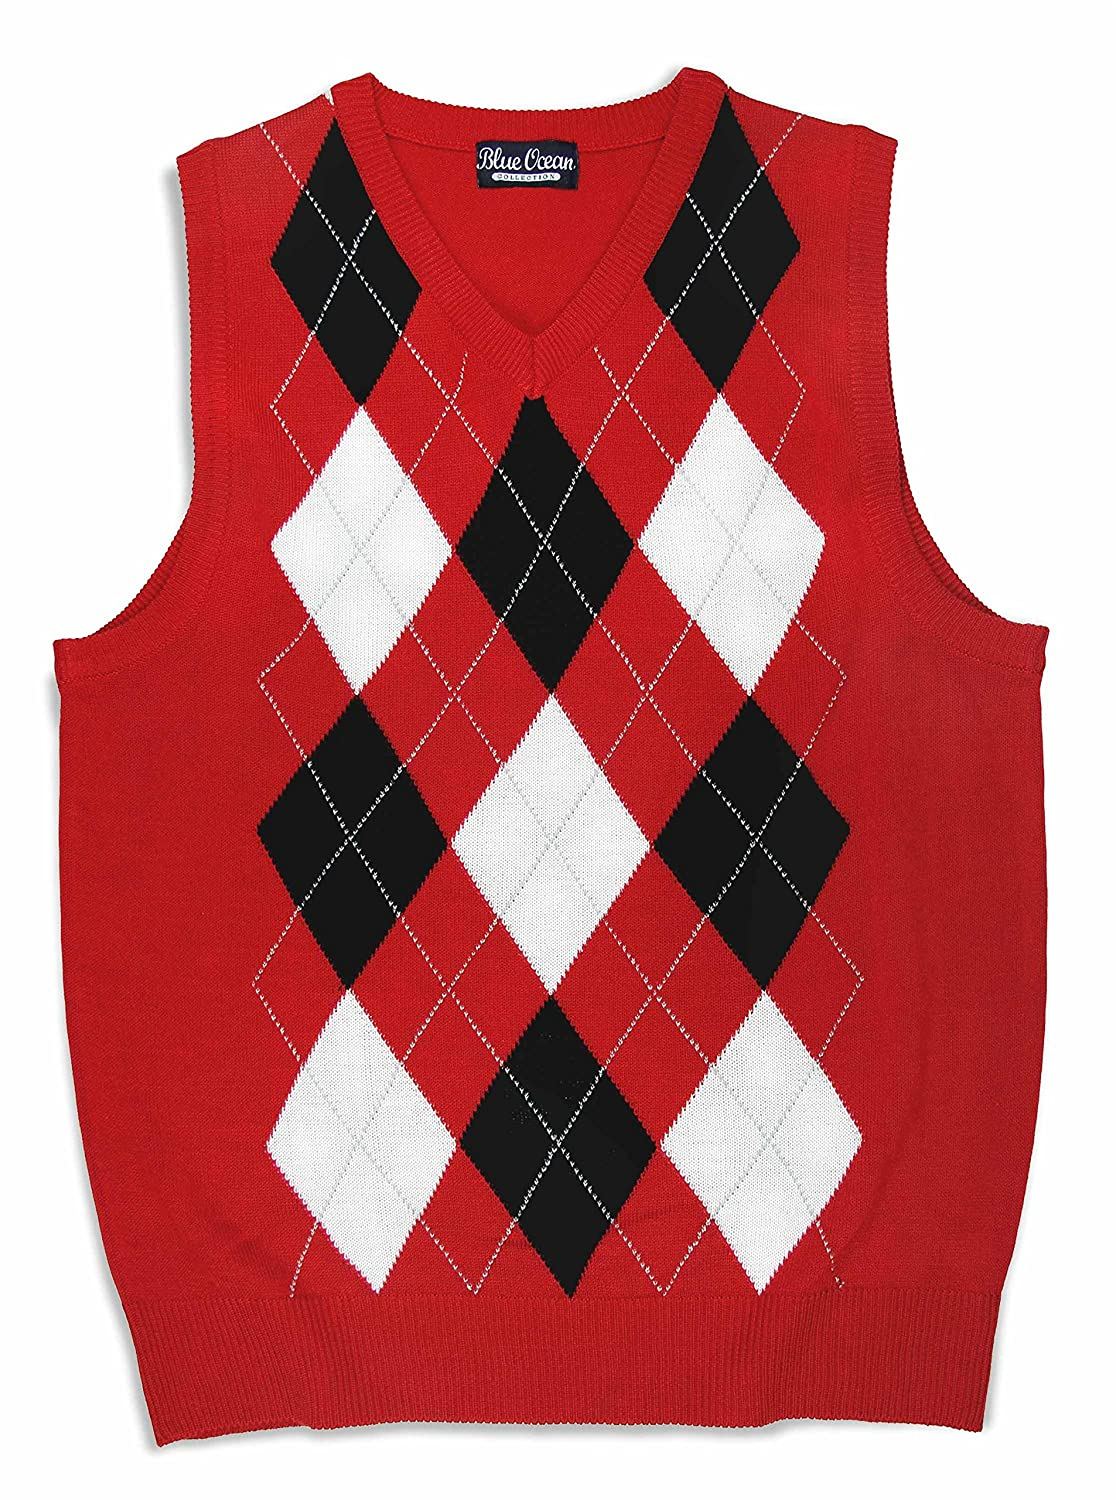 Blue Ocean Kids Argyle Sweater Vest-12-14/Medium SV-255BOYS-Red-12-14/Medium